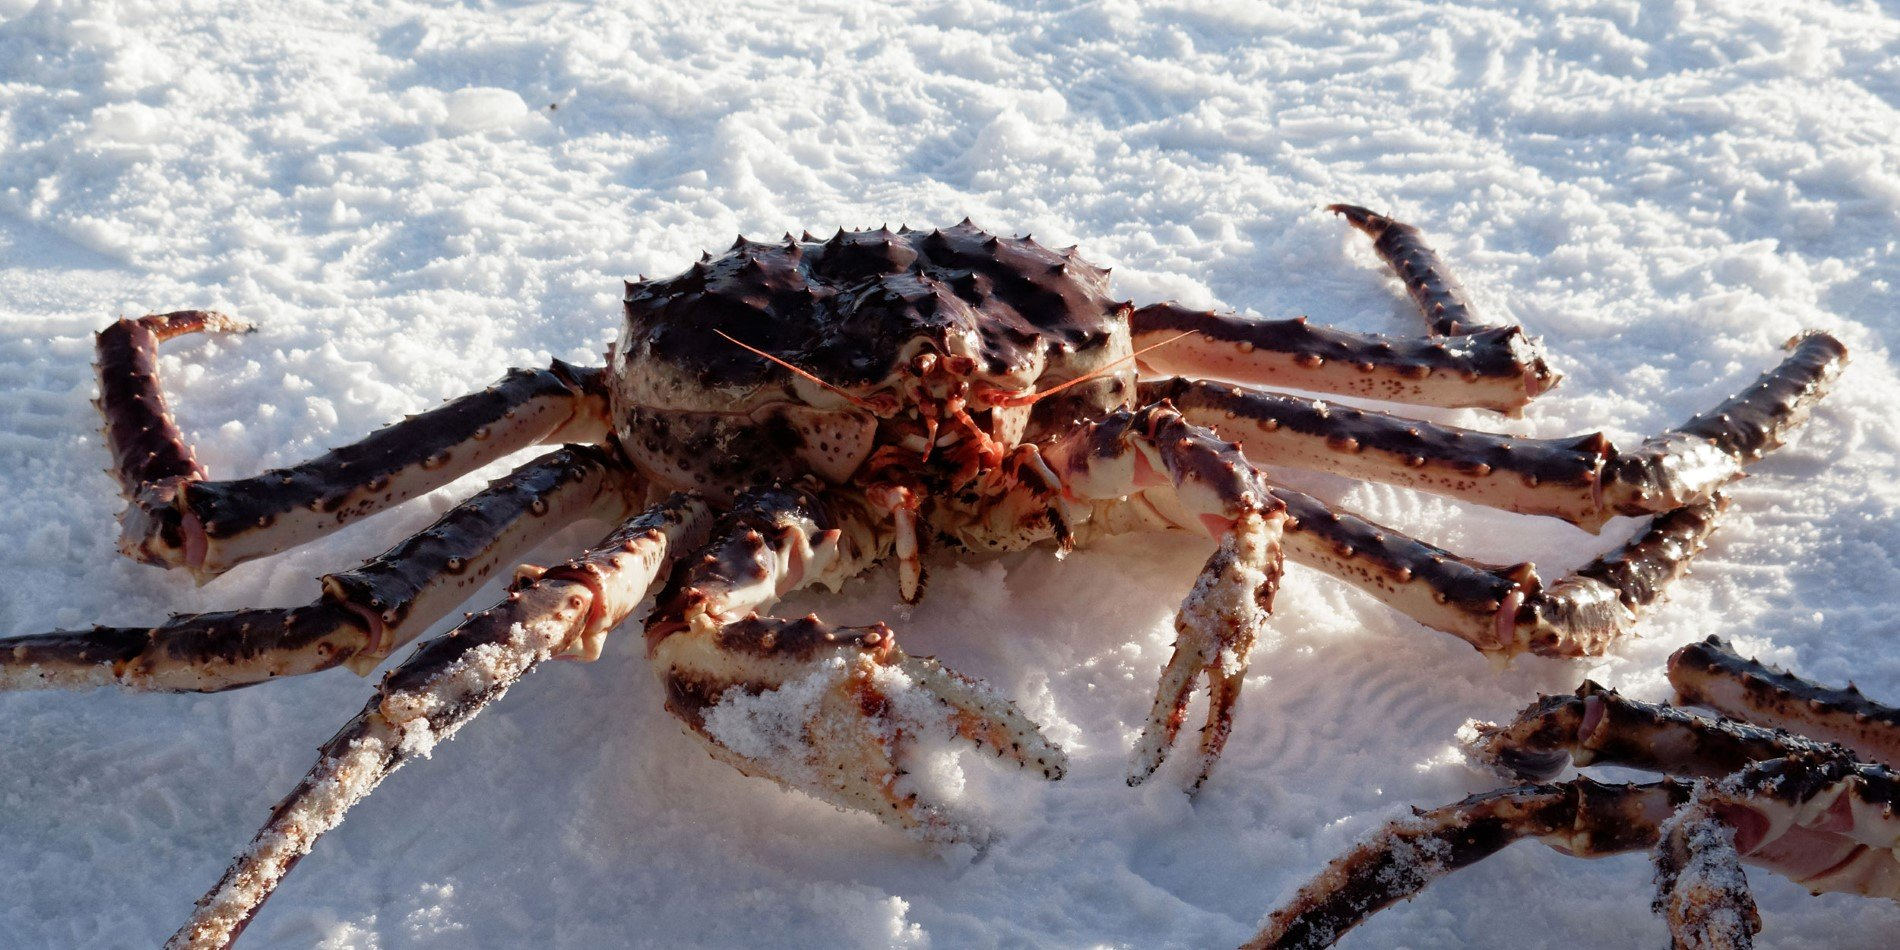 A crab in the snow